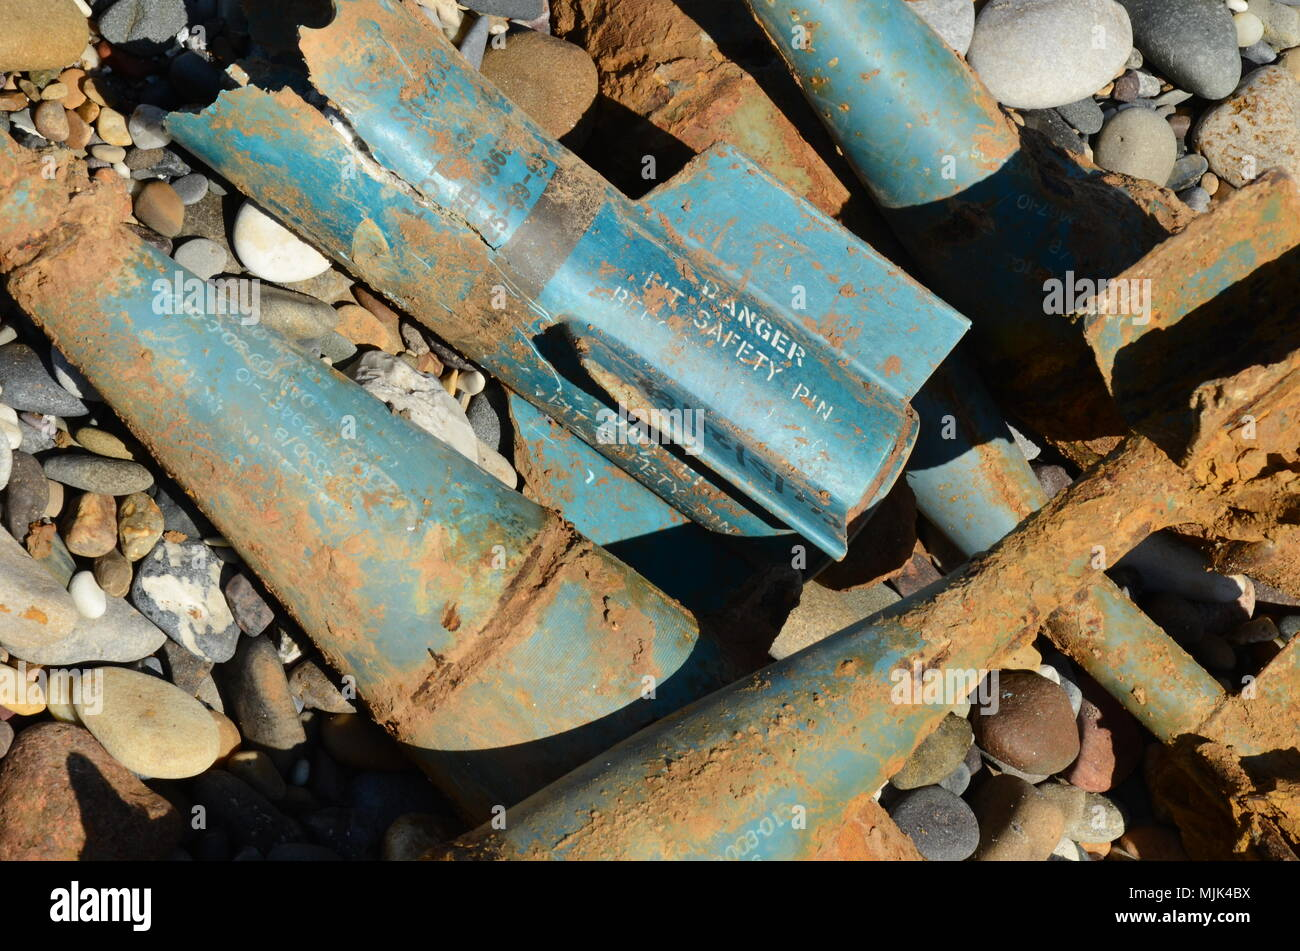 aircraft bombs and ammunition, air raid,  poison gas attack Damascus, Syria, UXB - Stock Image